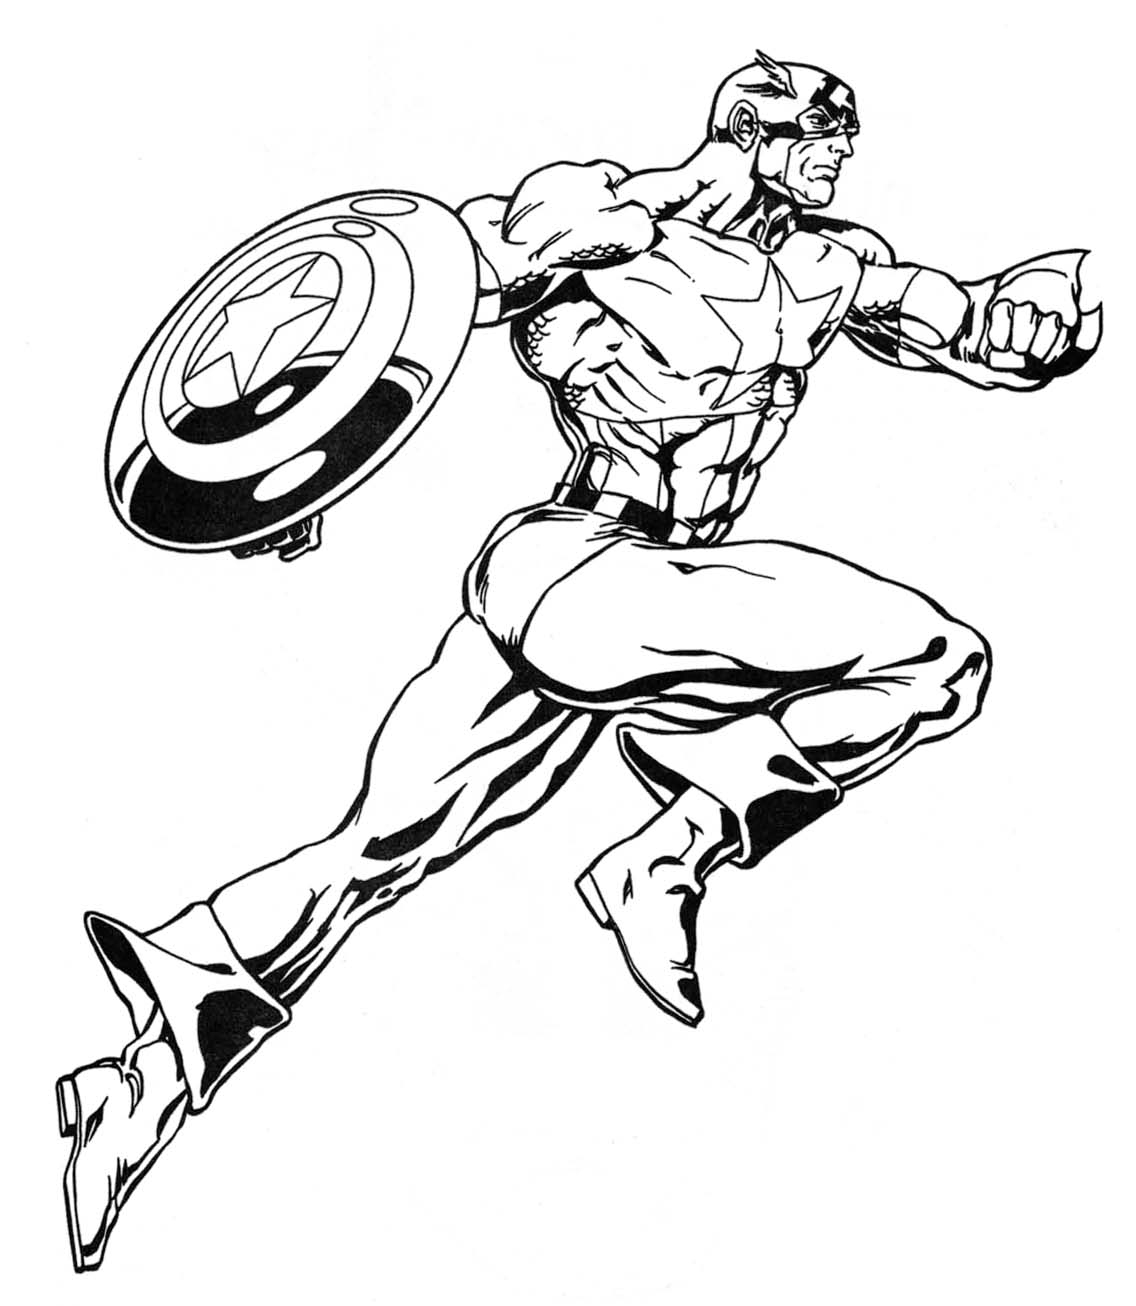 marvel coloring pictures get this avengers coloring pages marvel superheroes pictures coloring marvel